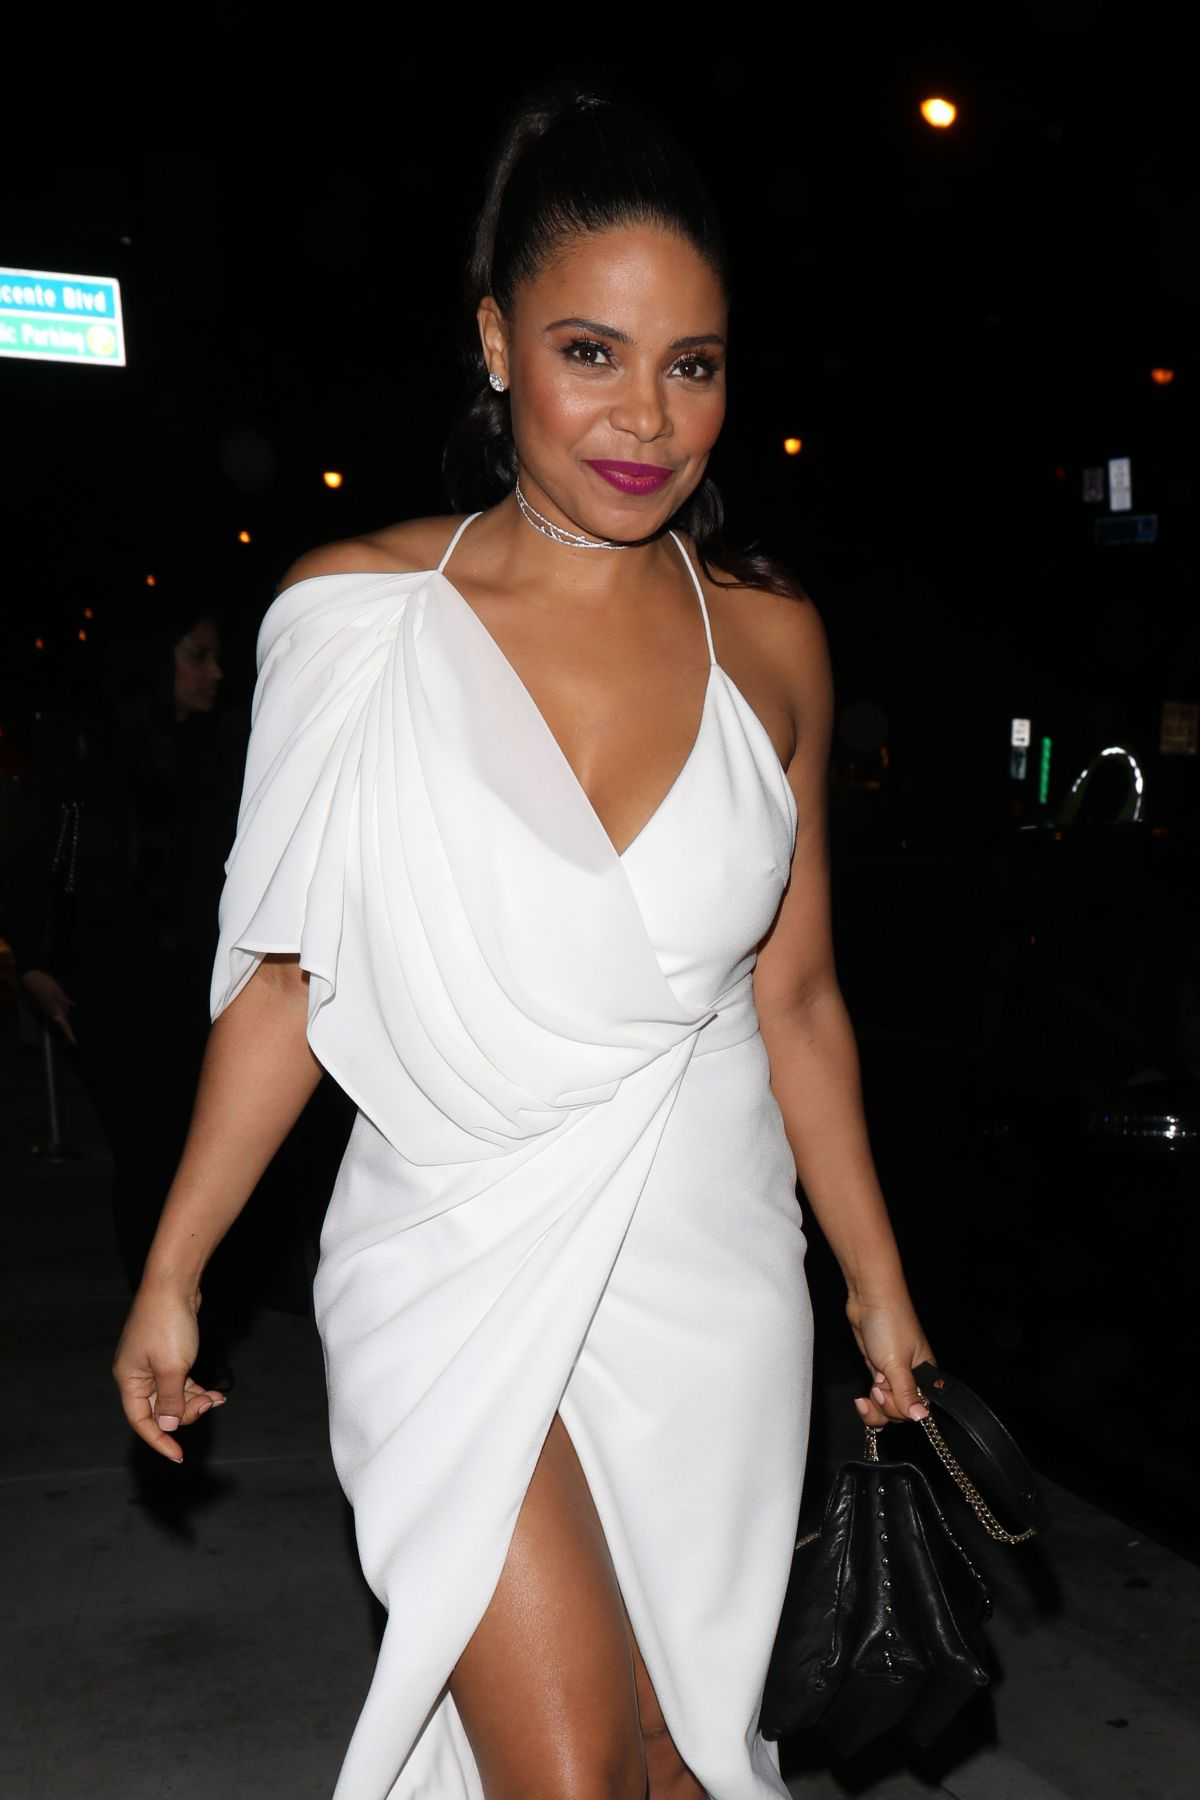 SANAA LATHAN at Catch LA in West Hollywood 03/16/2017